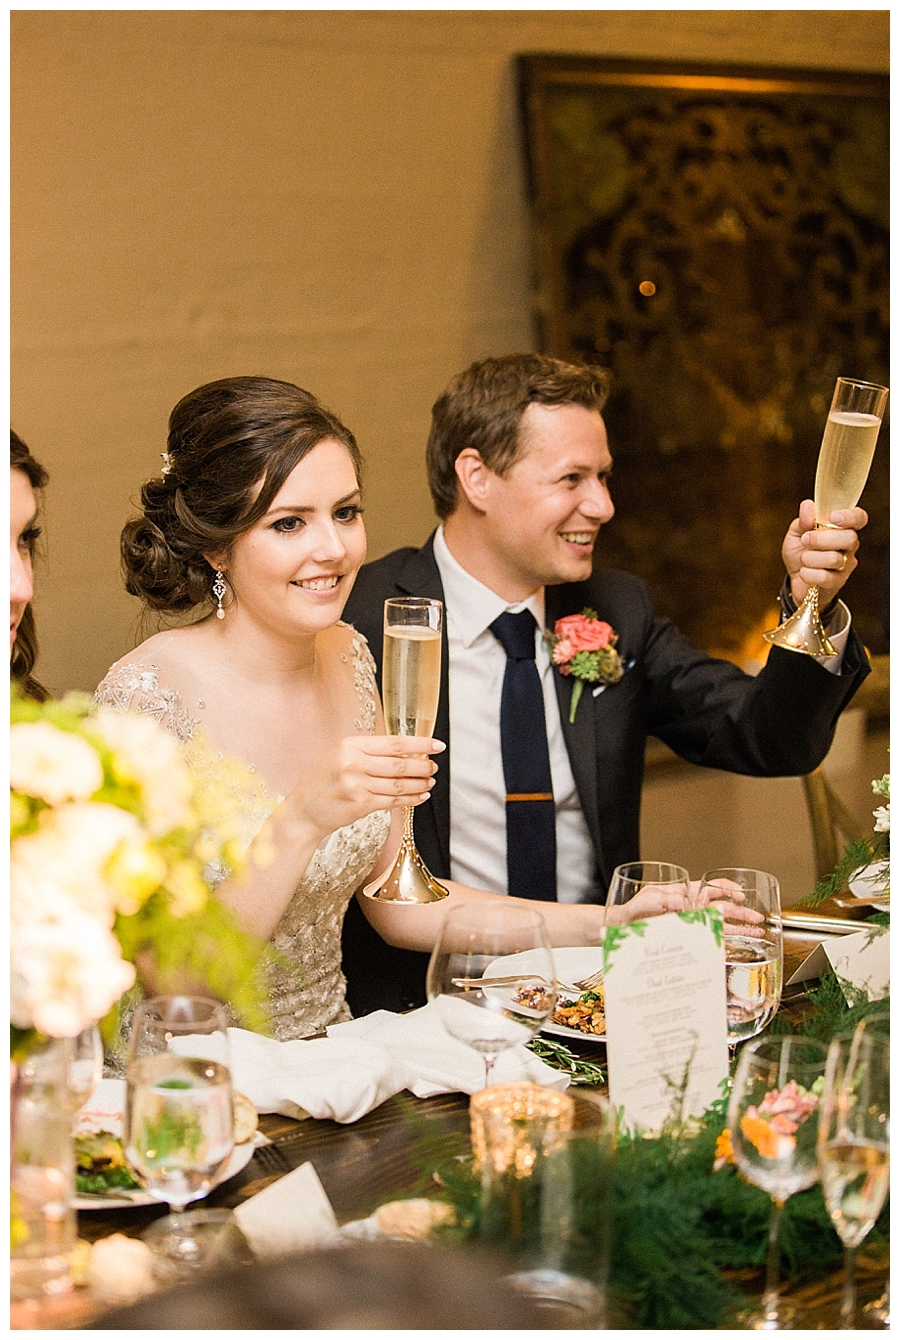 fine art wedding photography at Artifact Events in Ravenswood, Illinois